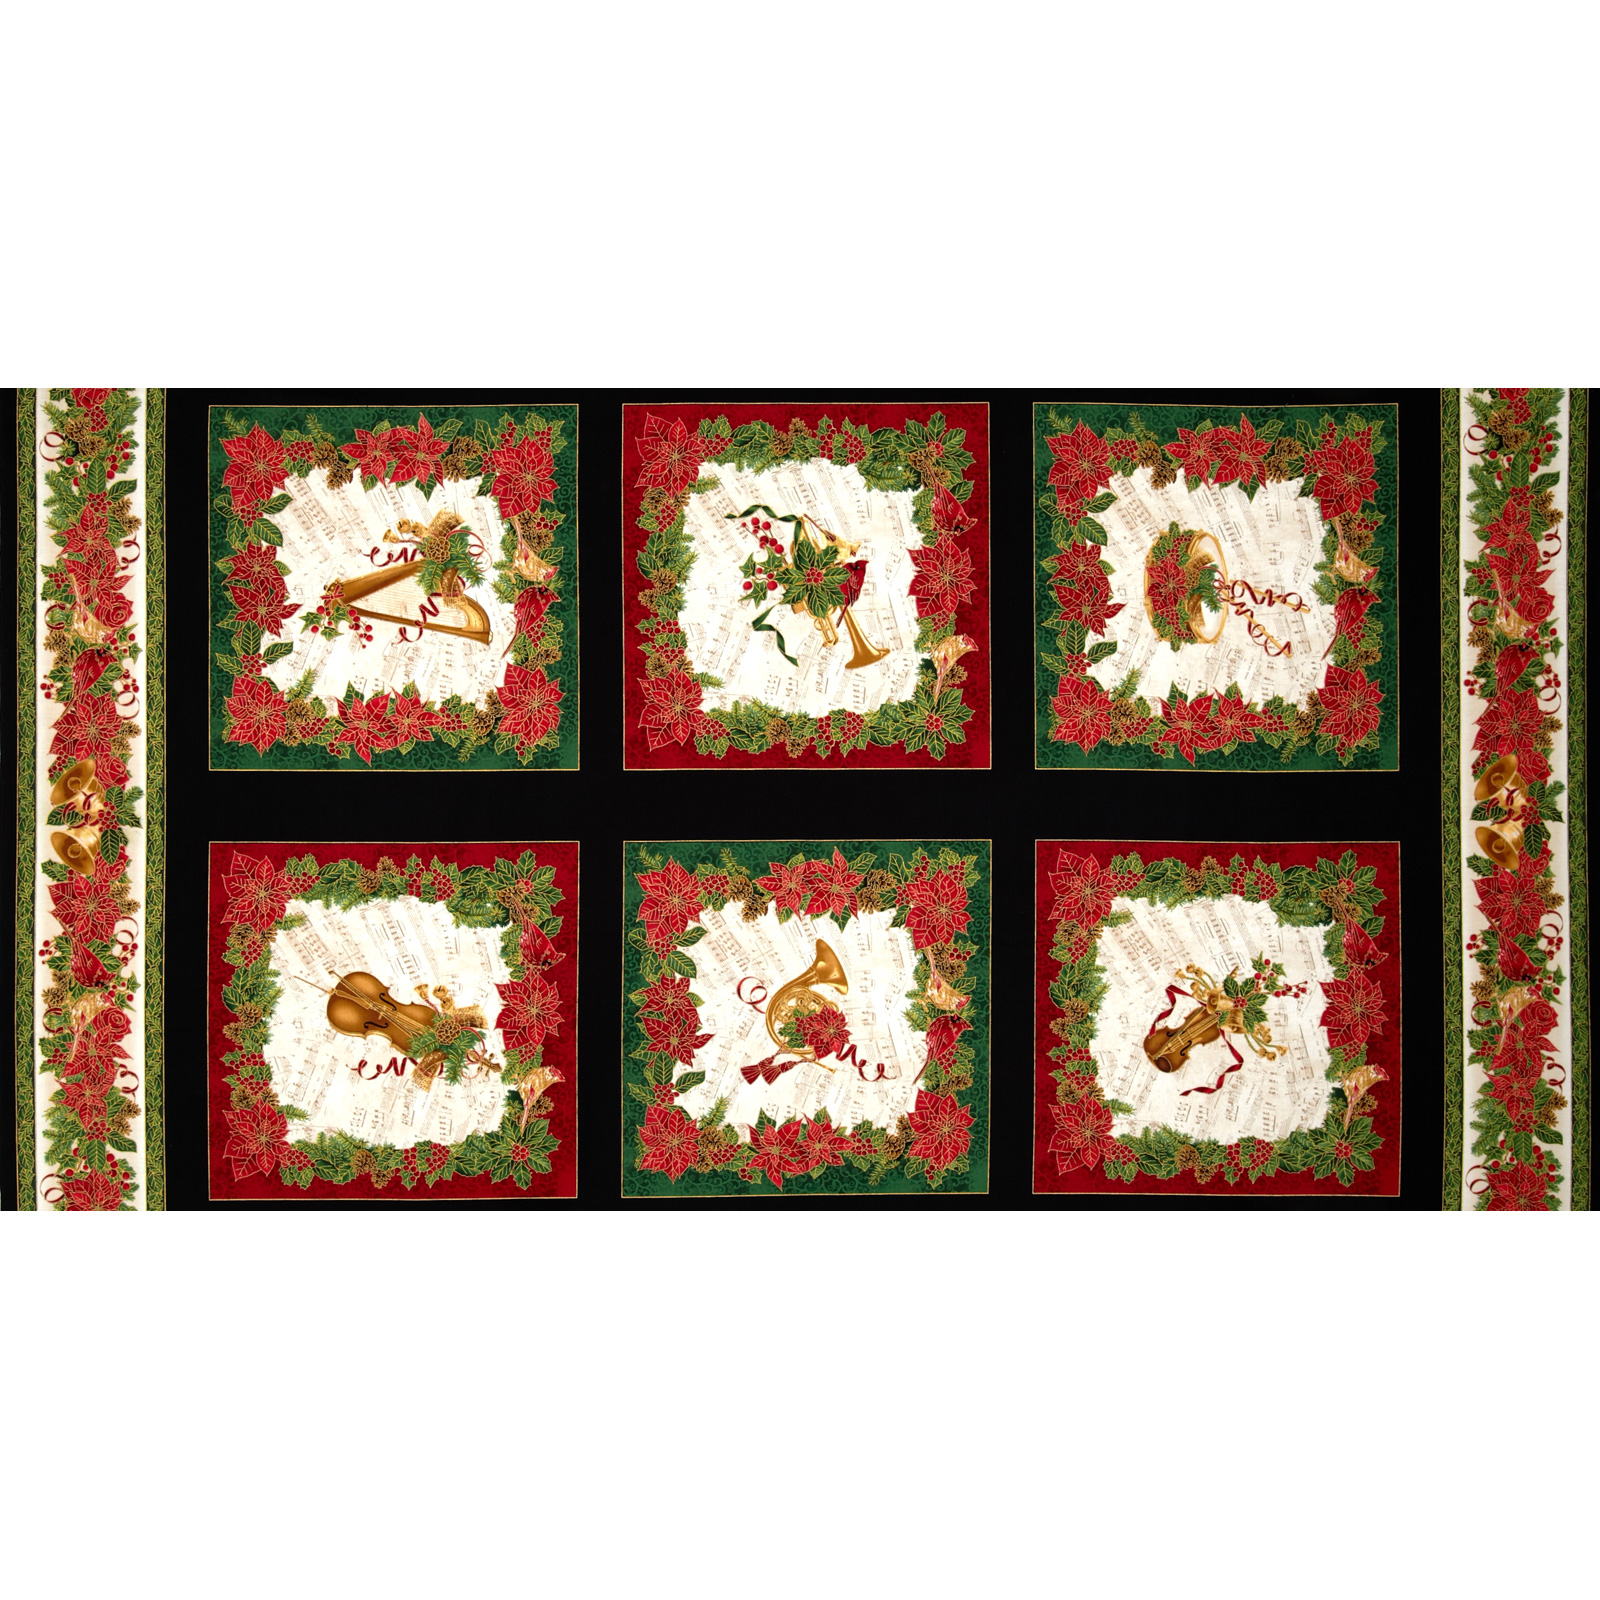 Timeless Treasures Comfort & Joy Metallic Christmas Panel